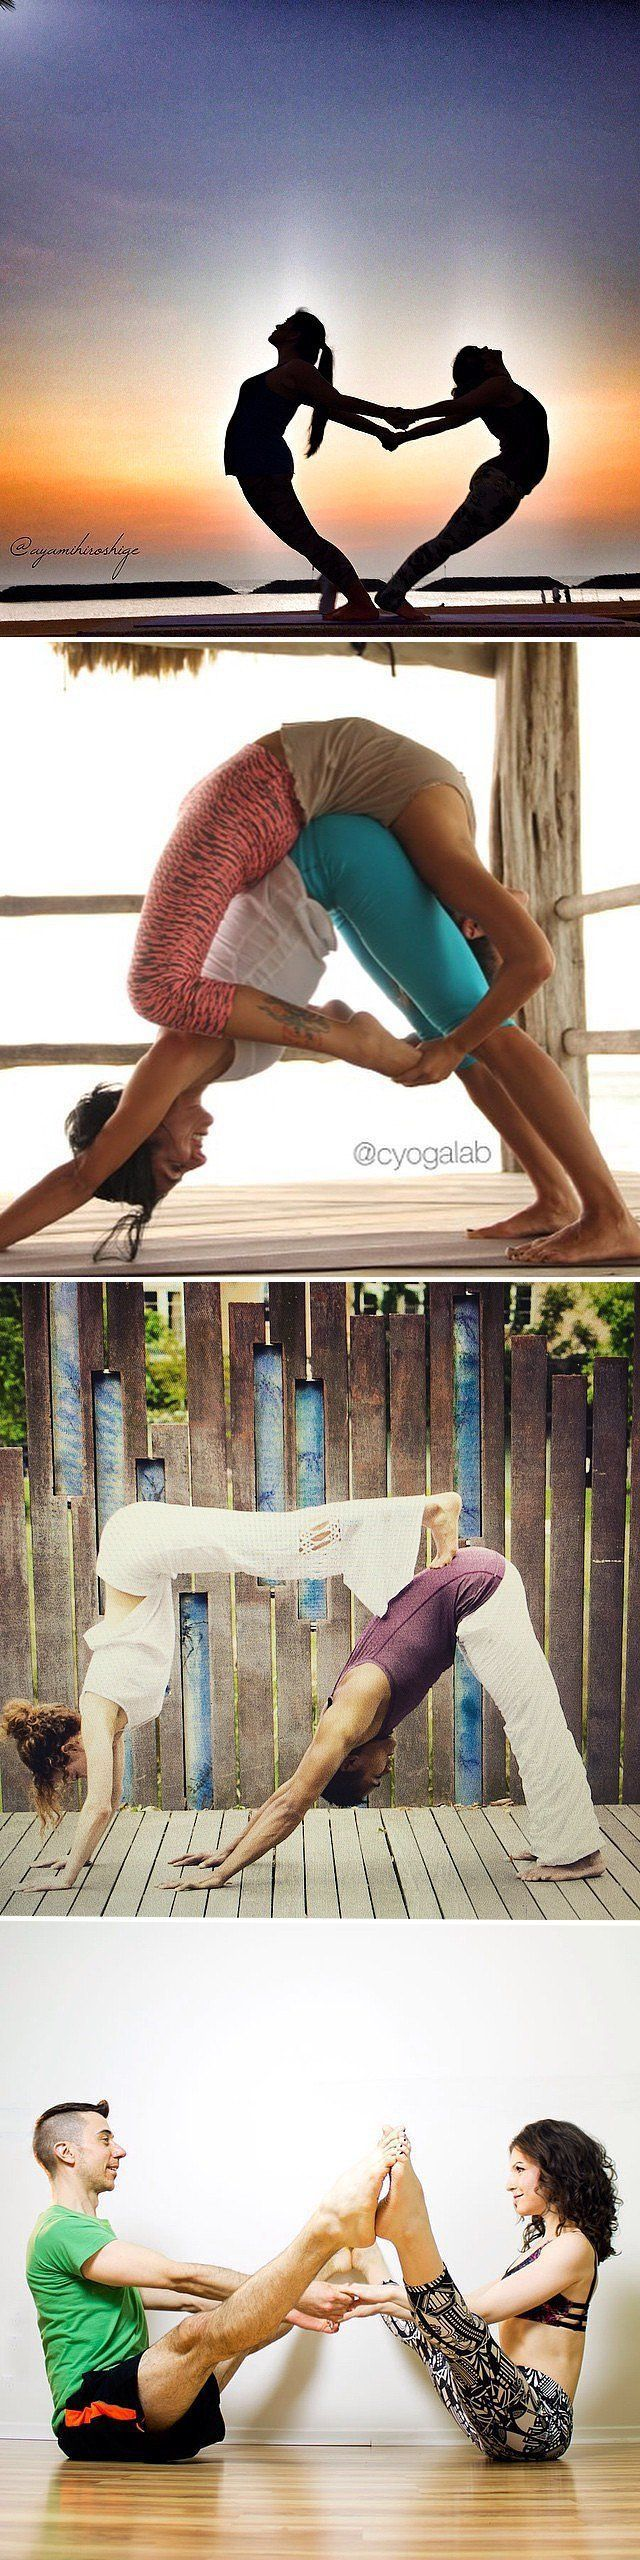 Pin for Later: Partner Yoga Poses For Friends and Lovers